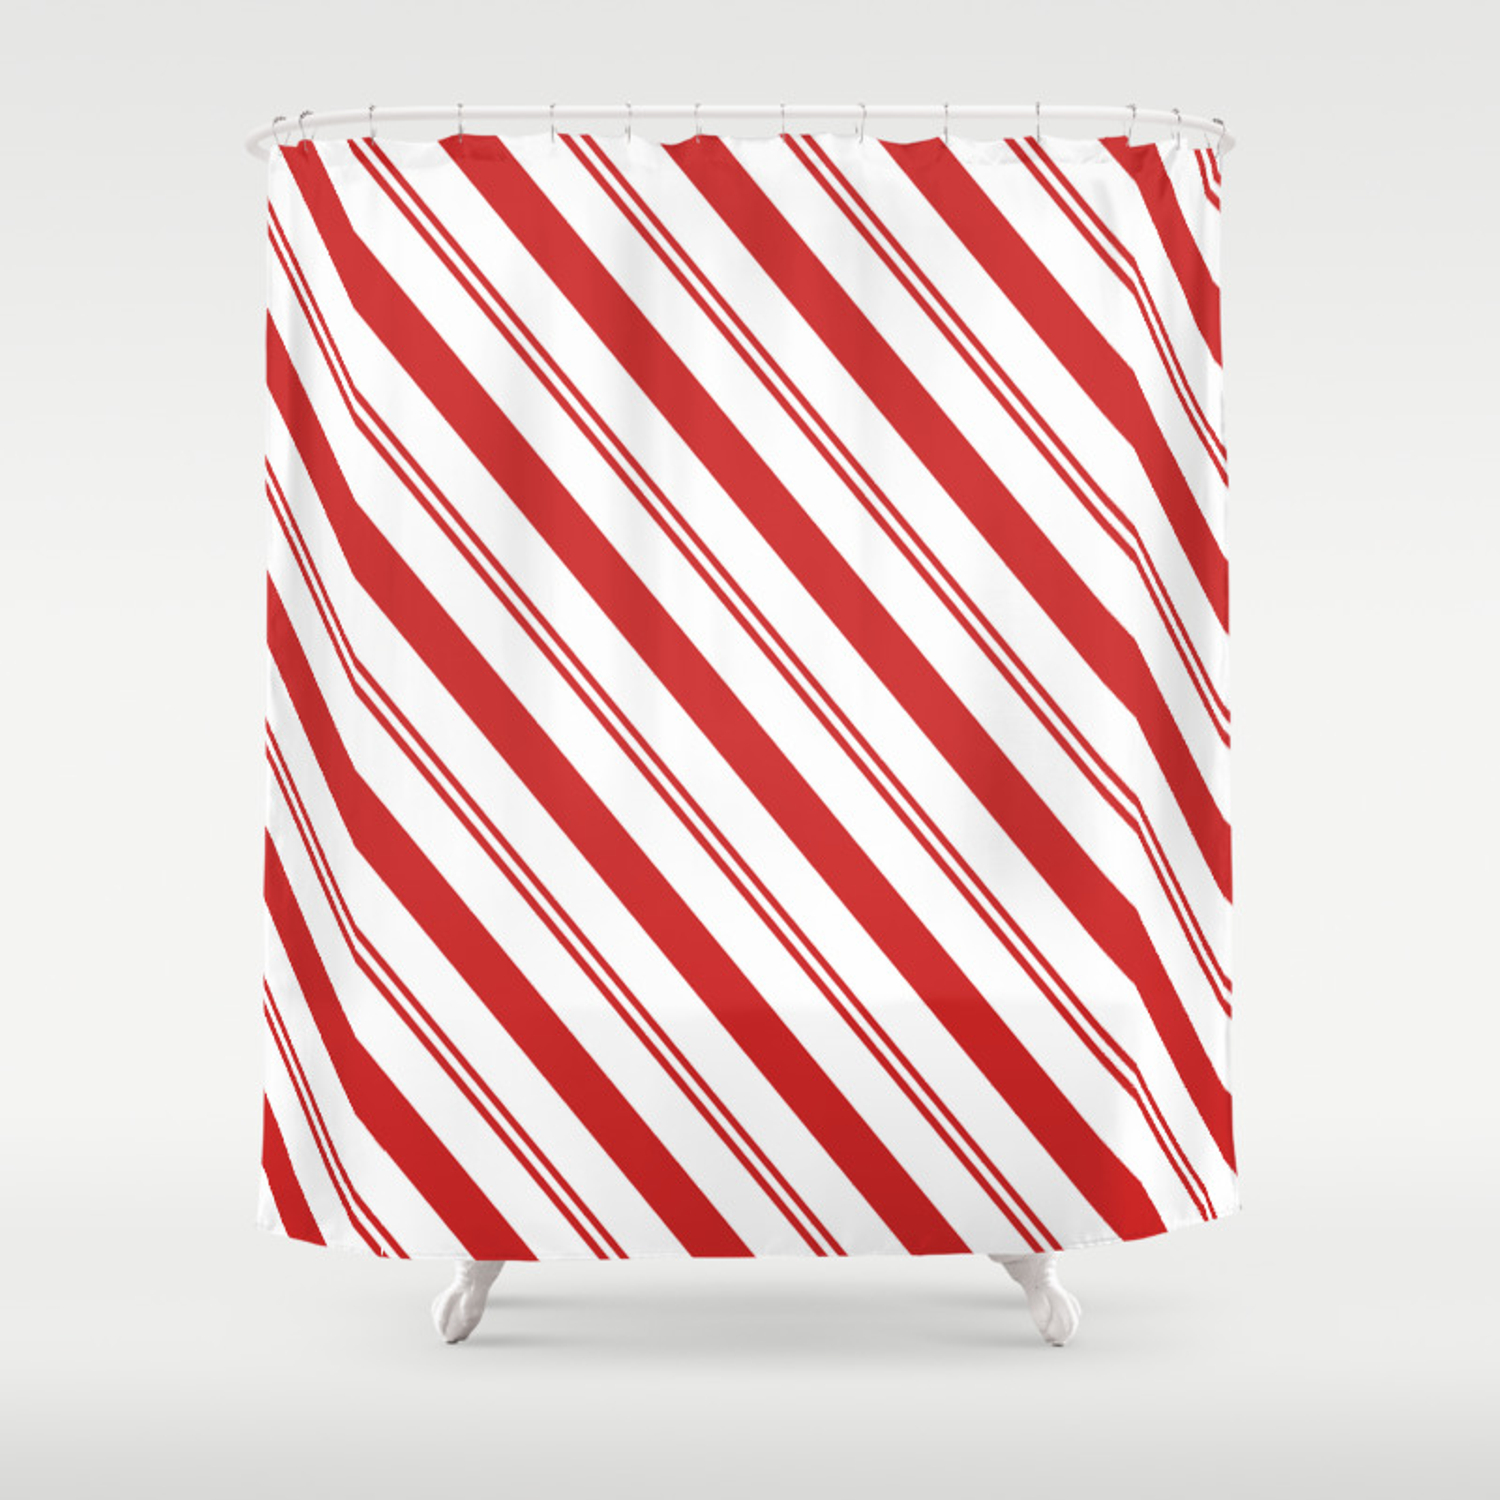 Red And White Candy Cane Stripes Thick And Thin Angled Lines Festive Christmas Shower Curtain